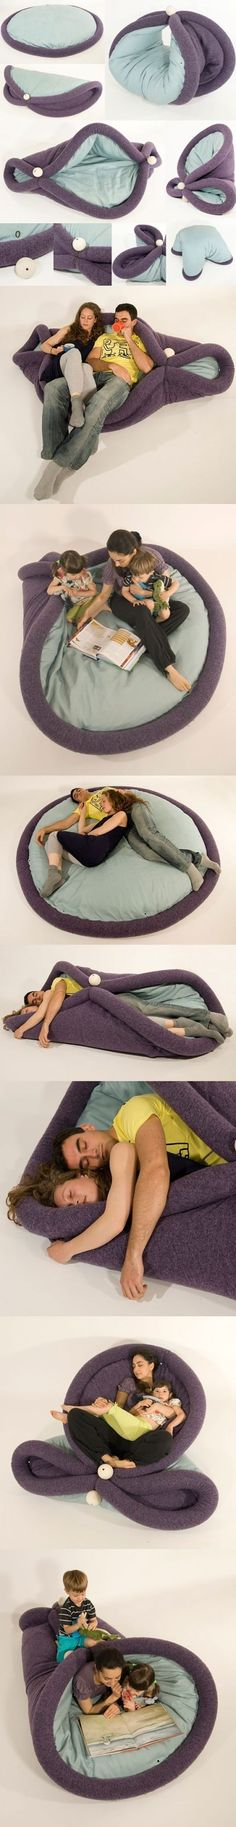 BLANDITO-Transformable-pad-for-lazy-living